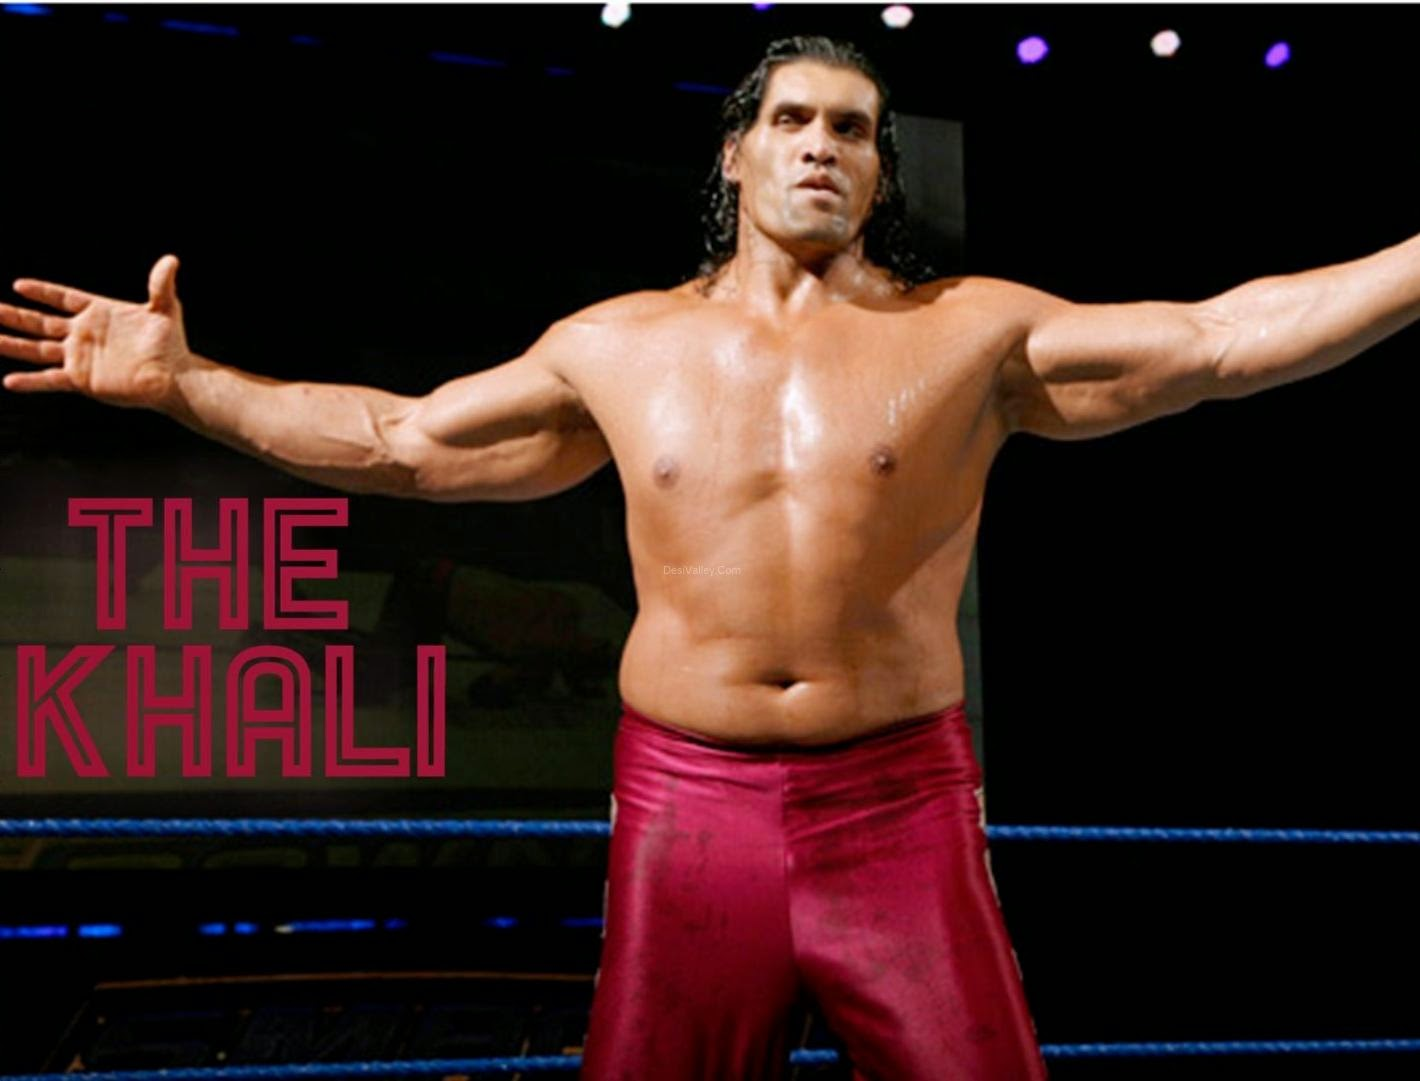 The Great Khali Hd Wallpapers Wwe Wallpapers Free